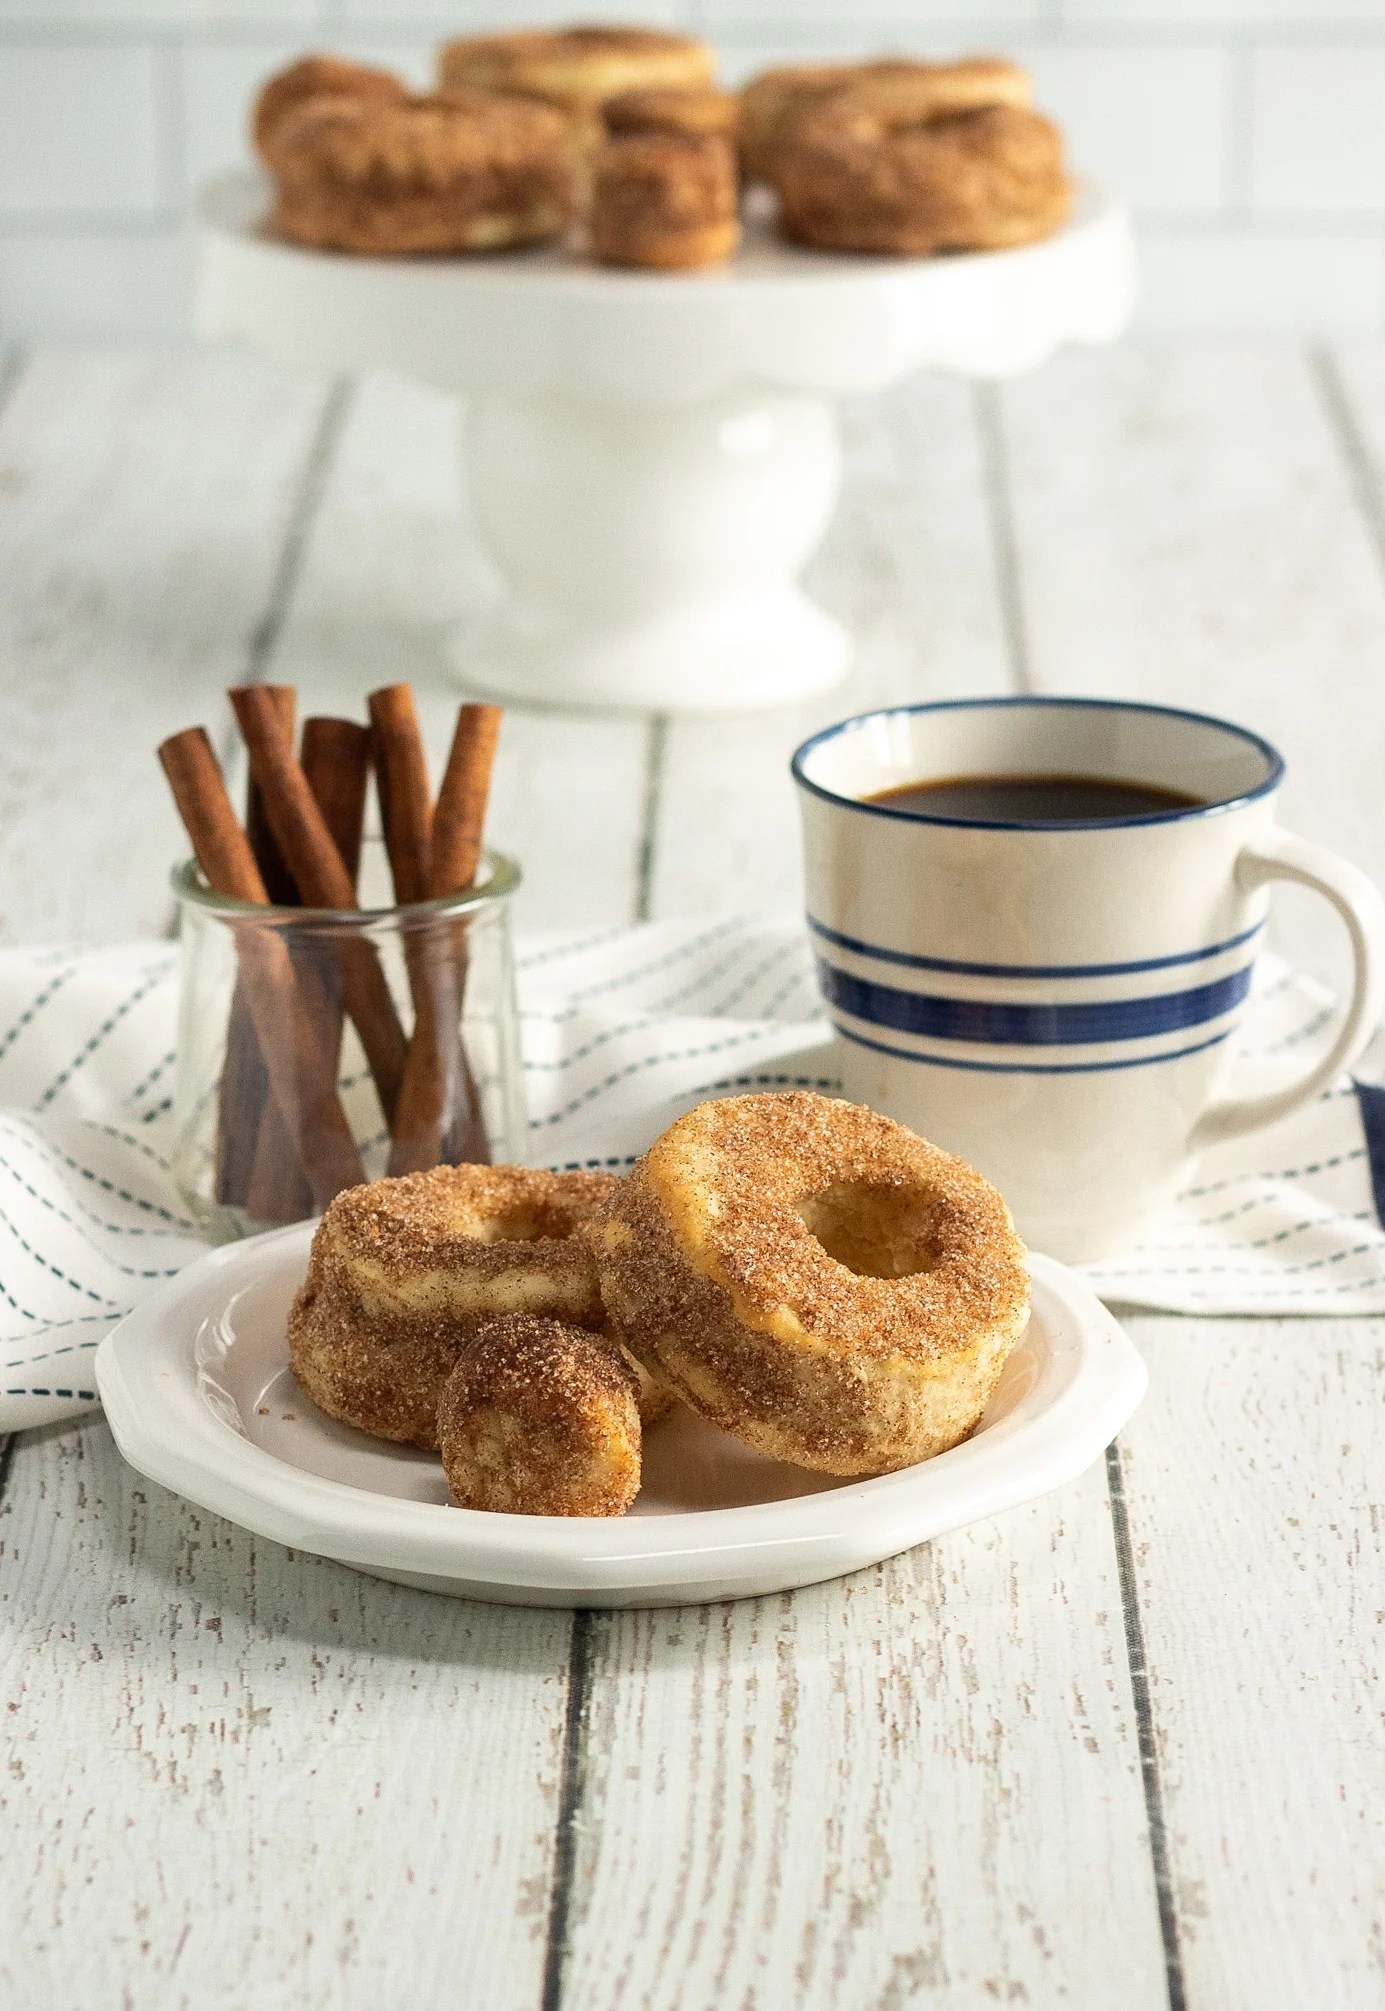 Air Fyrer Pumpkin Spice Donuts Table. Fill your home with the smell of freshly made Air Fryer Pumpkin Spice Donuts, perfect for this beautiful fall weather we are having. These easy to make Pumpkin Spice Donuts have a crisp outer coating yet they so soft fluffy inside, enjoy them with a healthy coating of cinnamon sugar, or your favorite glaze.